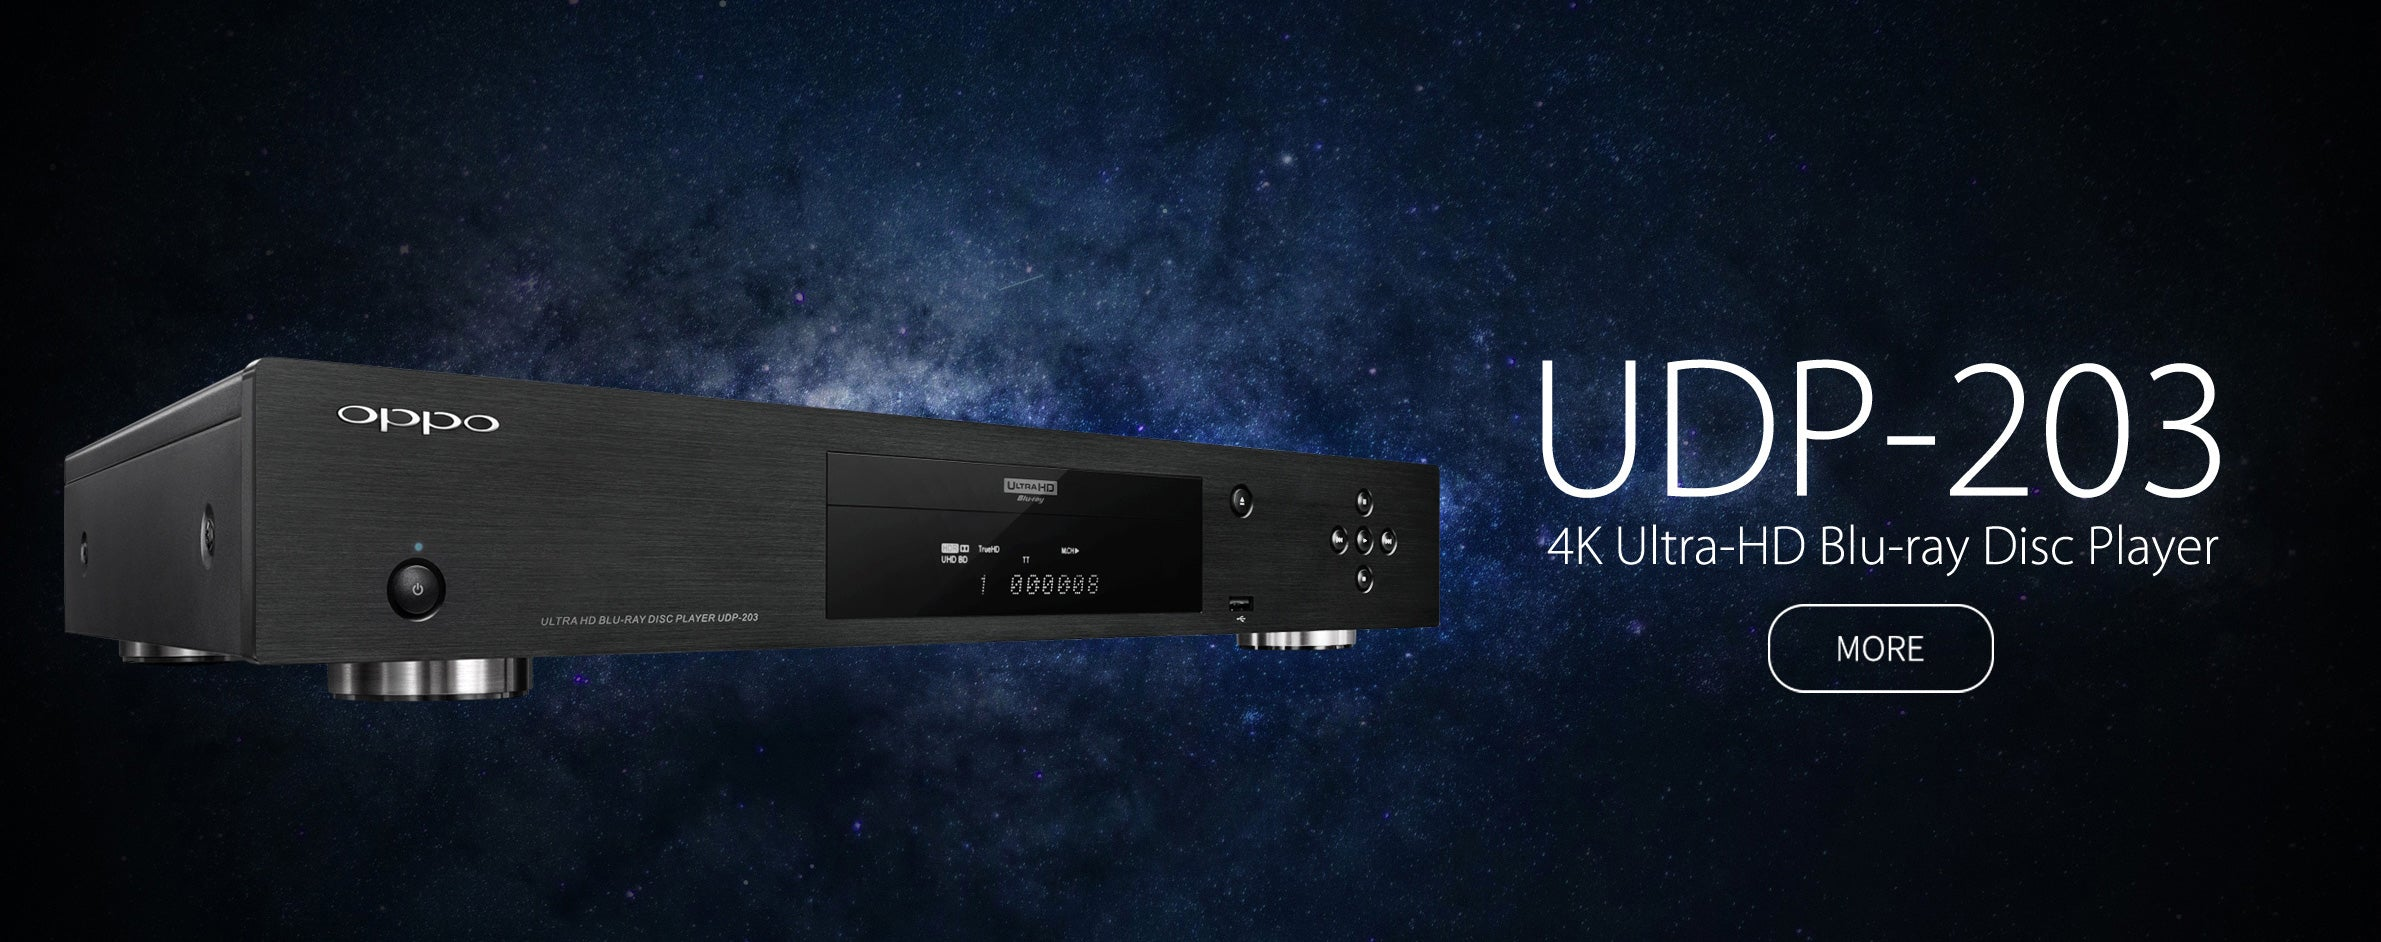 OPPO Digital Australia UDP-203 4K UHD Blu-ray Player Banner